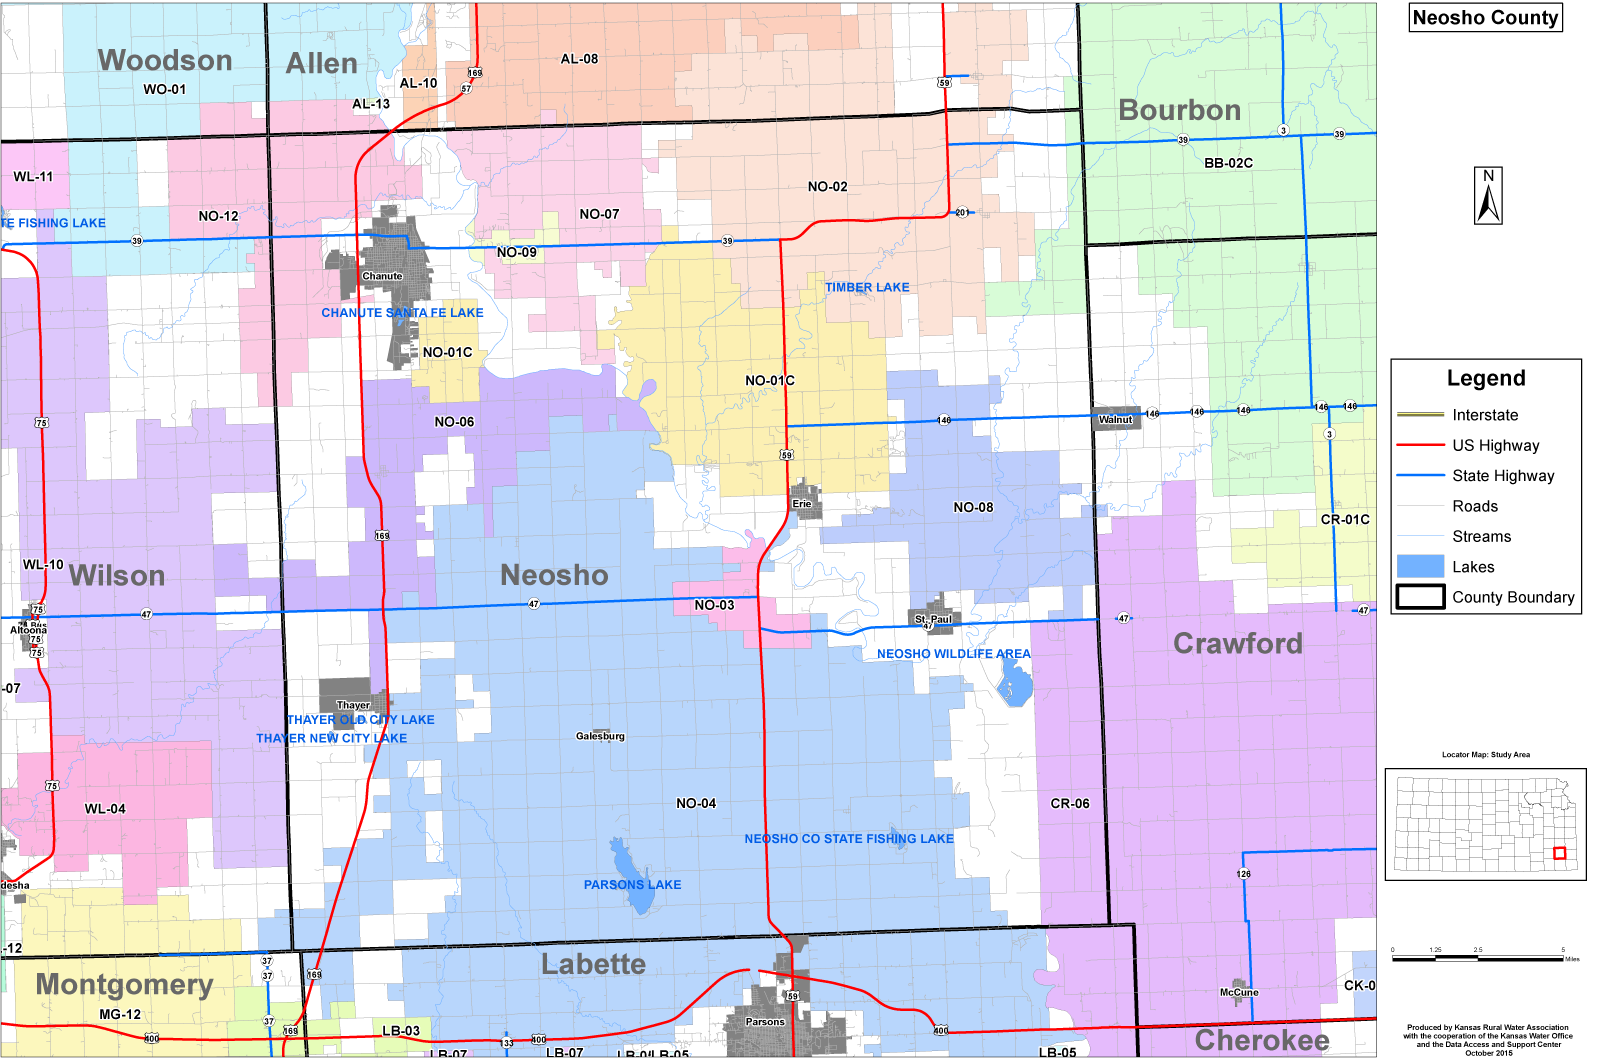 Kansas neosho county stark - Search Contact Information In Our Directory Of City Rwd Contacts More About These Maps And Accuracy Back To Main Maps Page